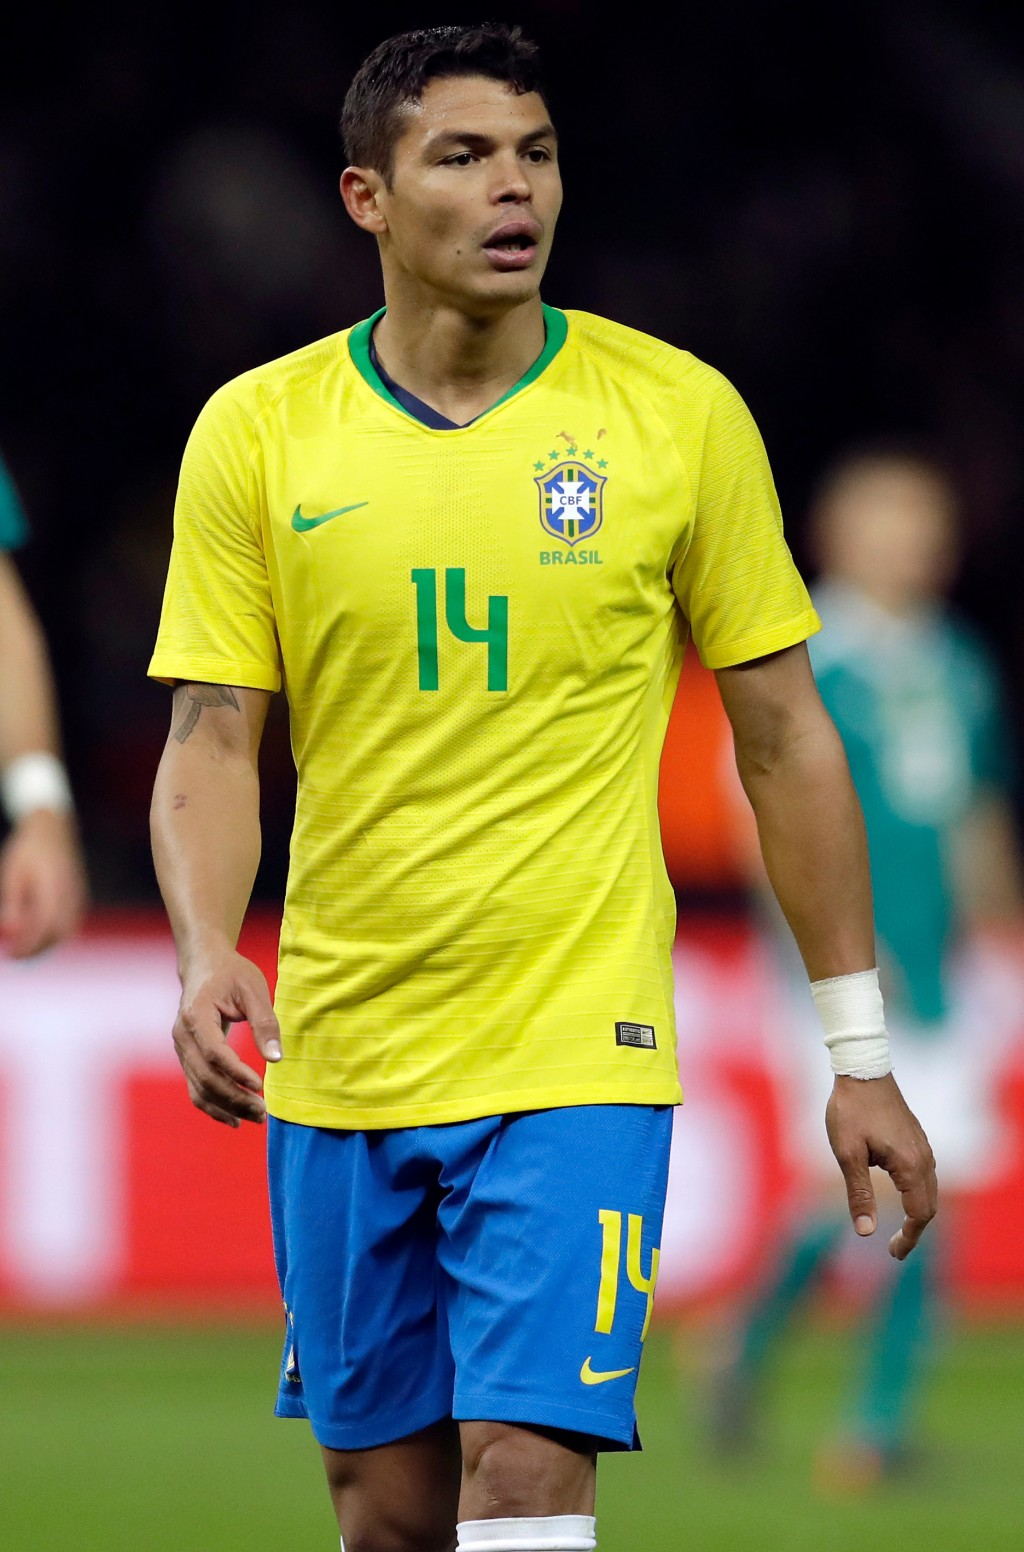 In this photo taken on Tuesday, March 27, 2018, Brazil's Thiago Silva during the international friendly soccer match between Germany and Brazil in Ber...